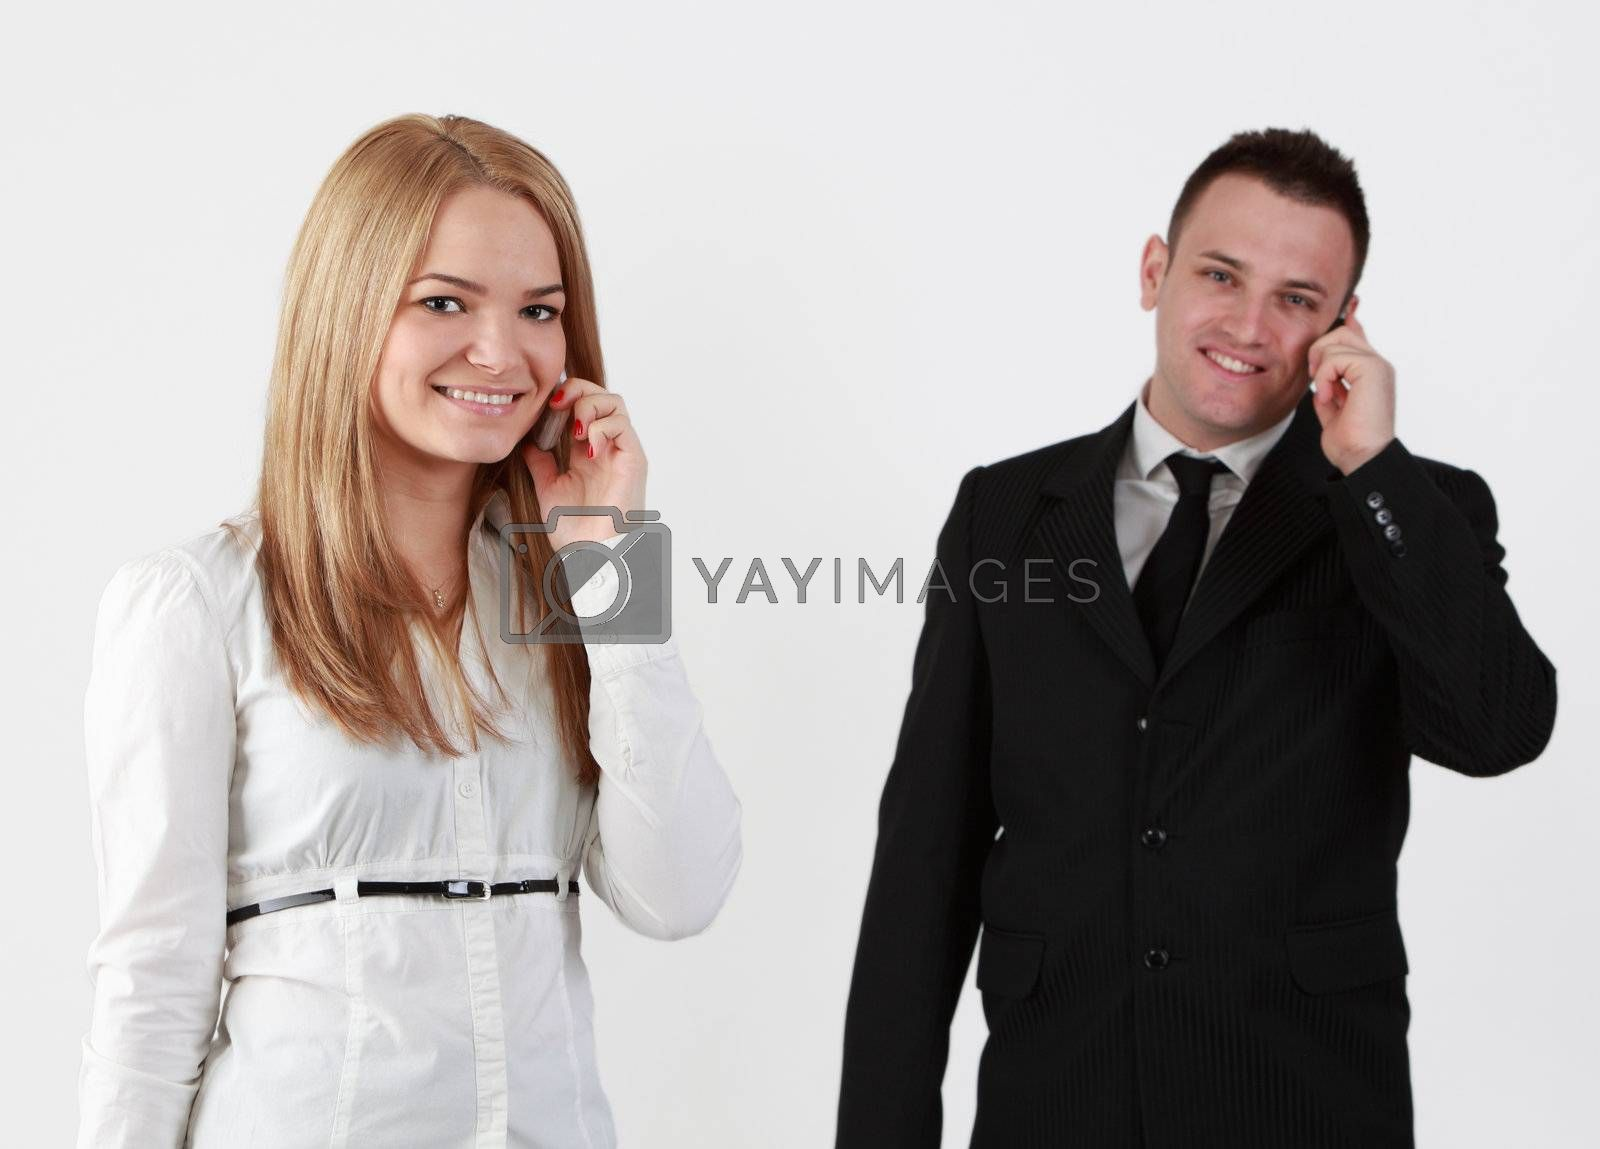 Young couple using mobile phones.Selective focus on the blonde woman.